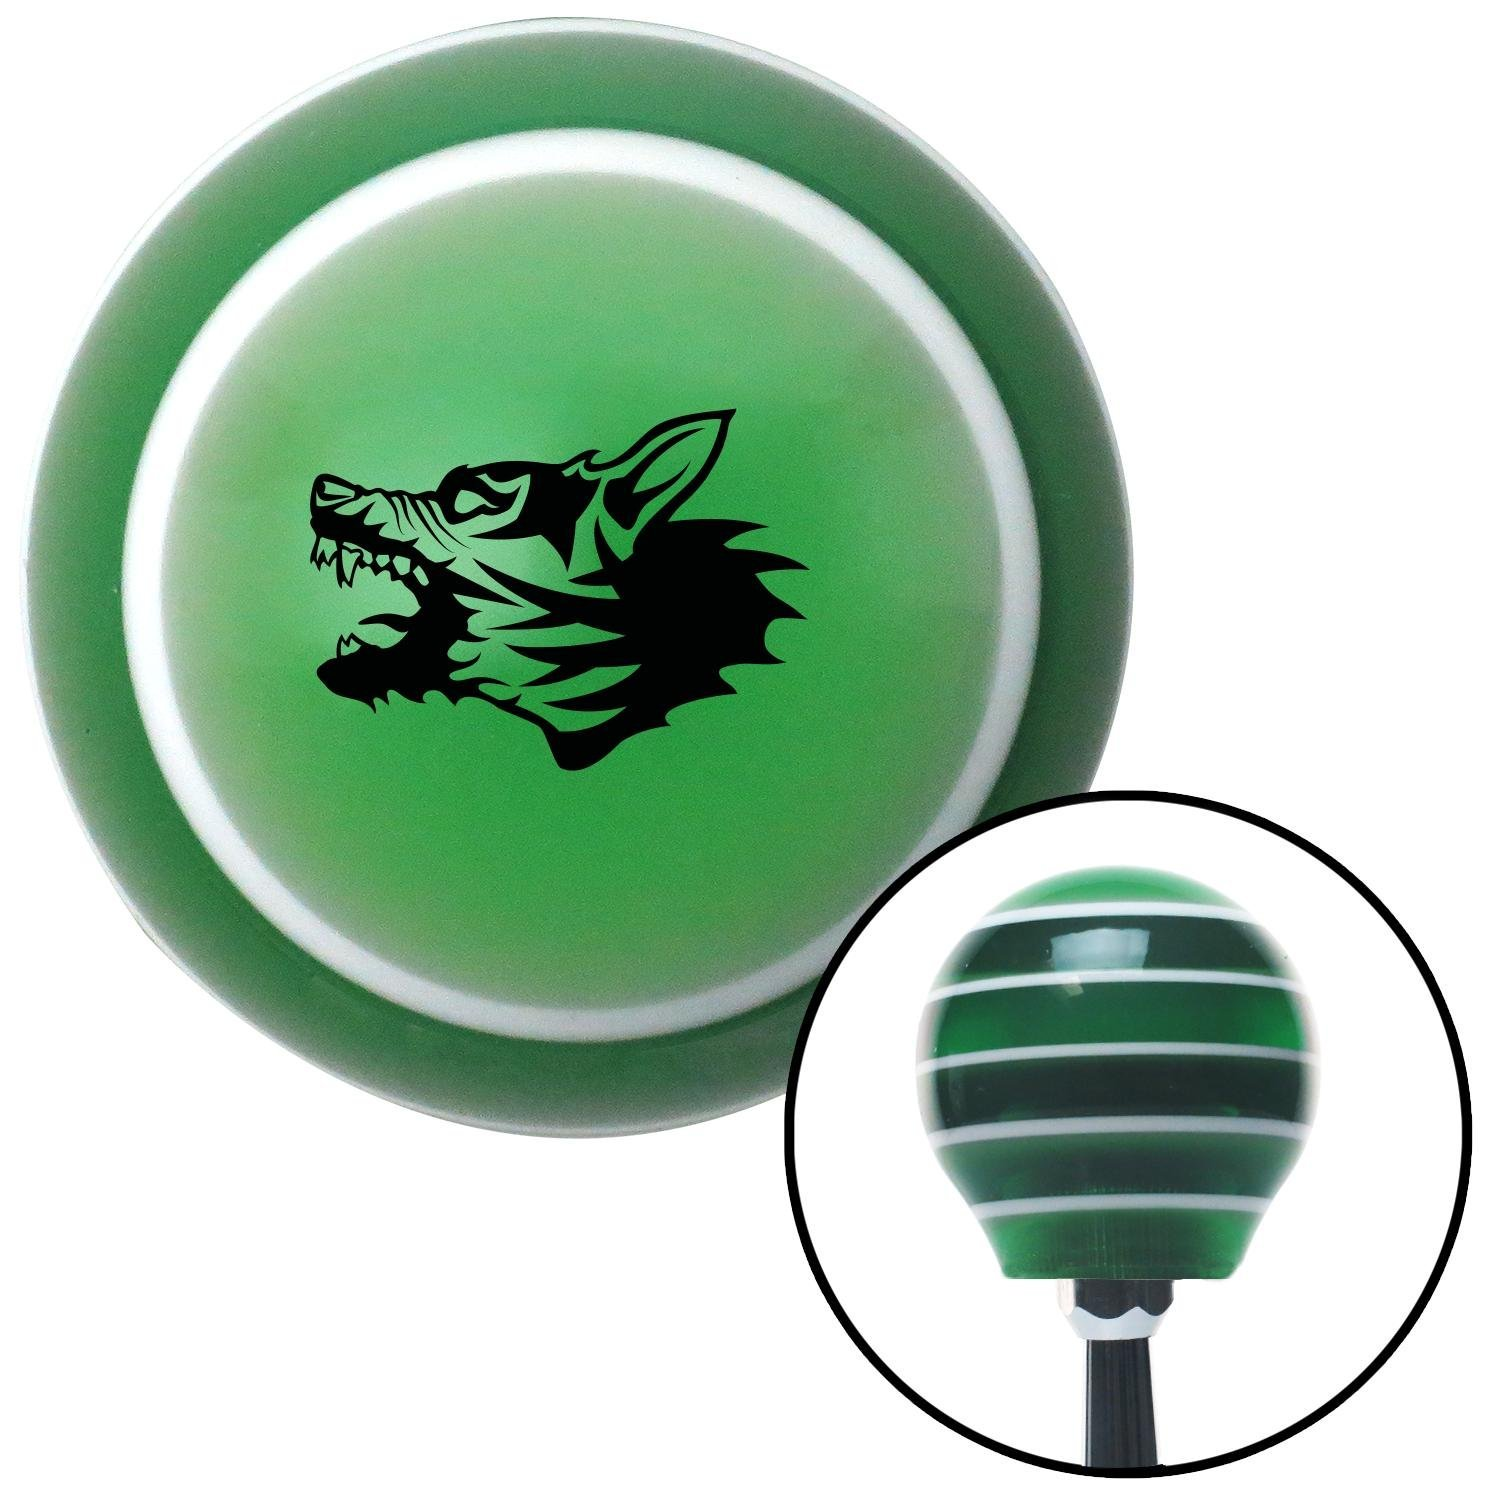 American Shifter 120667 Green Stripe Shift Knob with M16 x 1.5 Insert Black Angry Dog